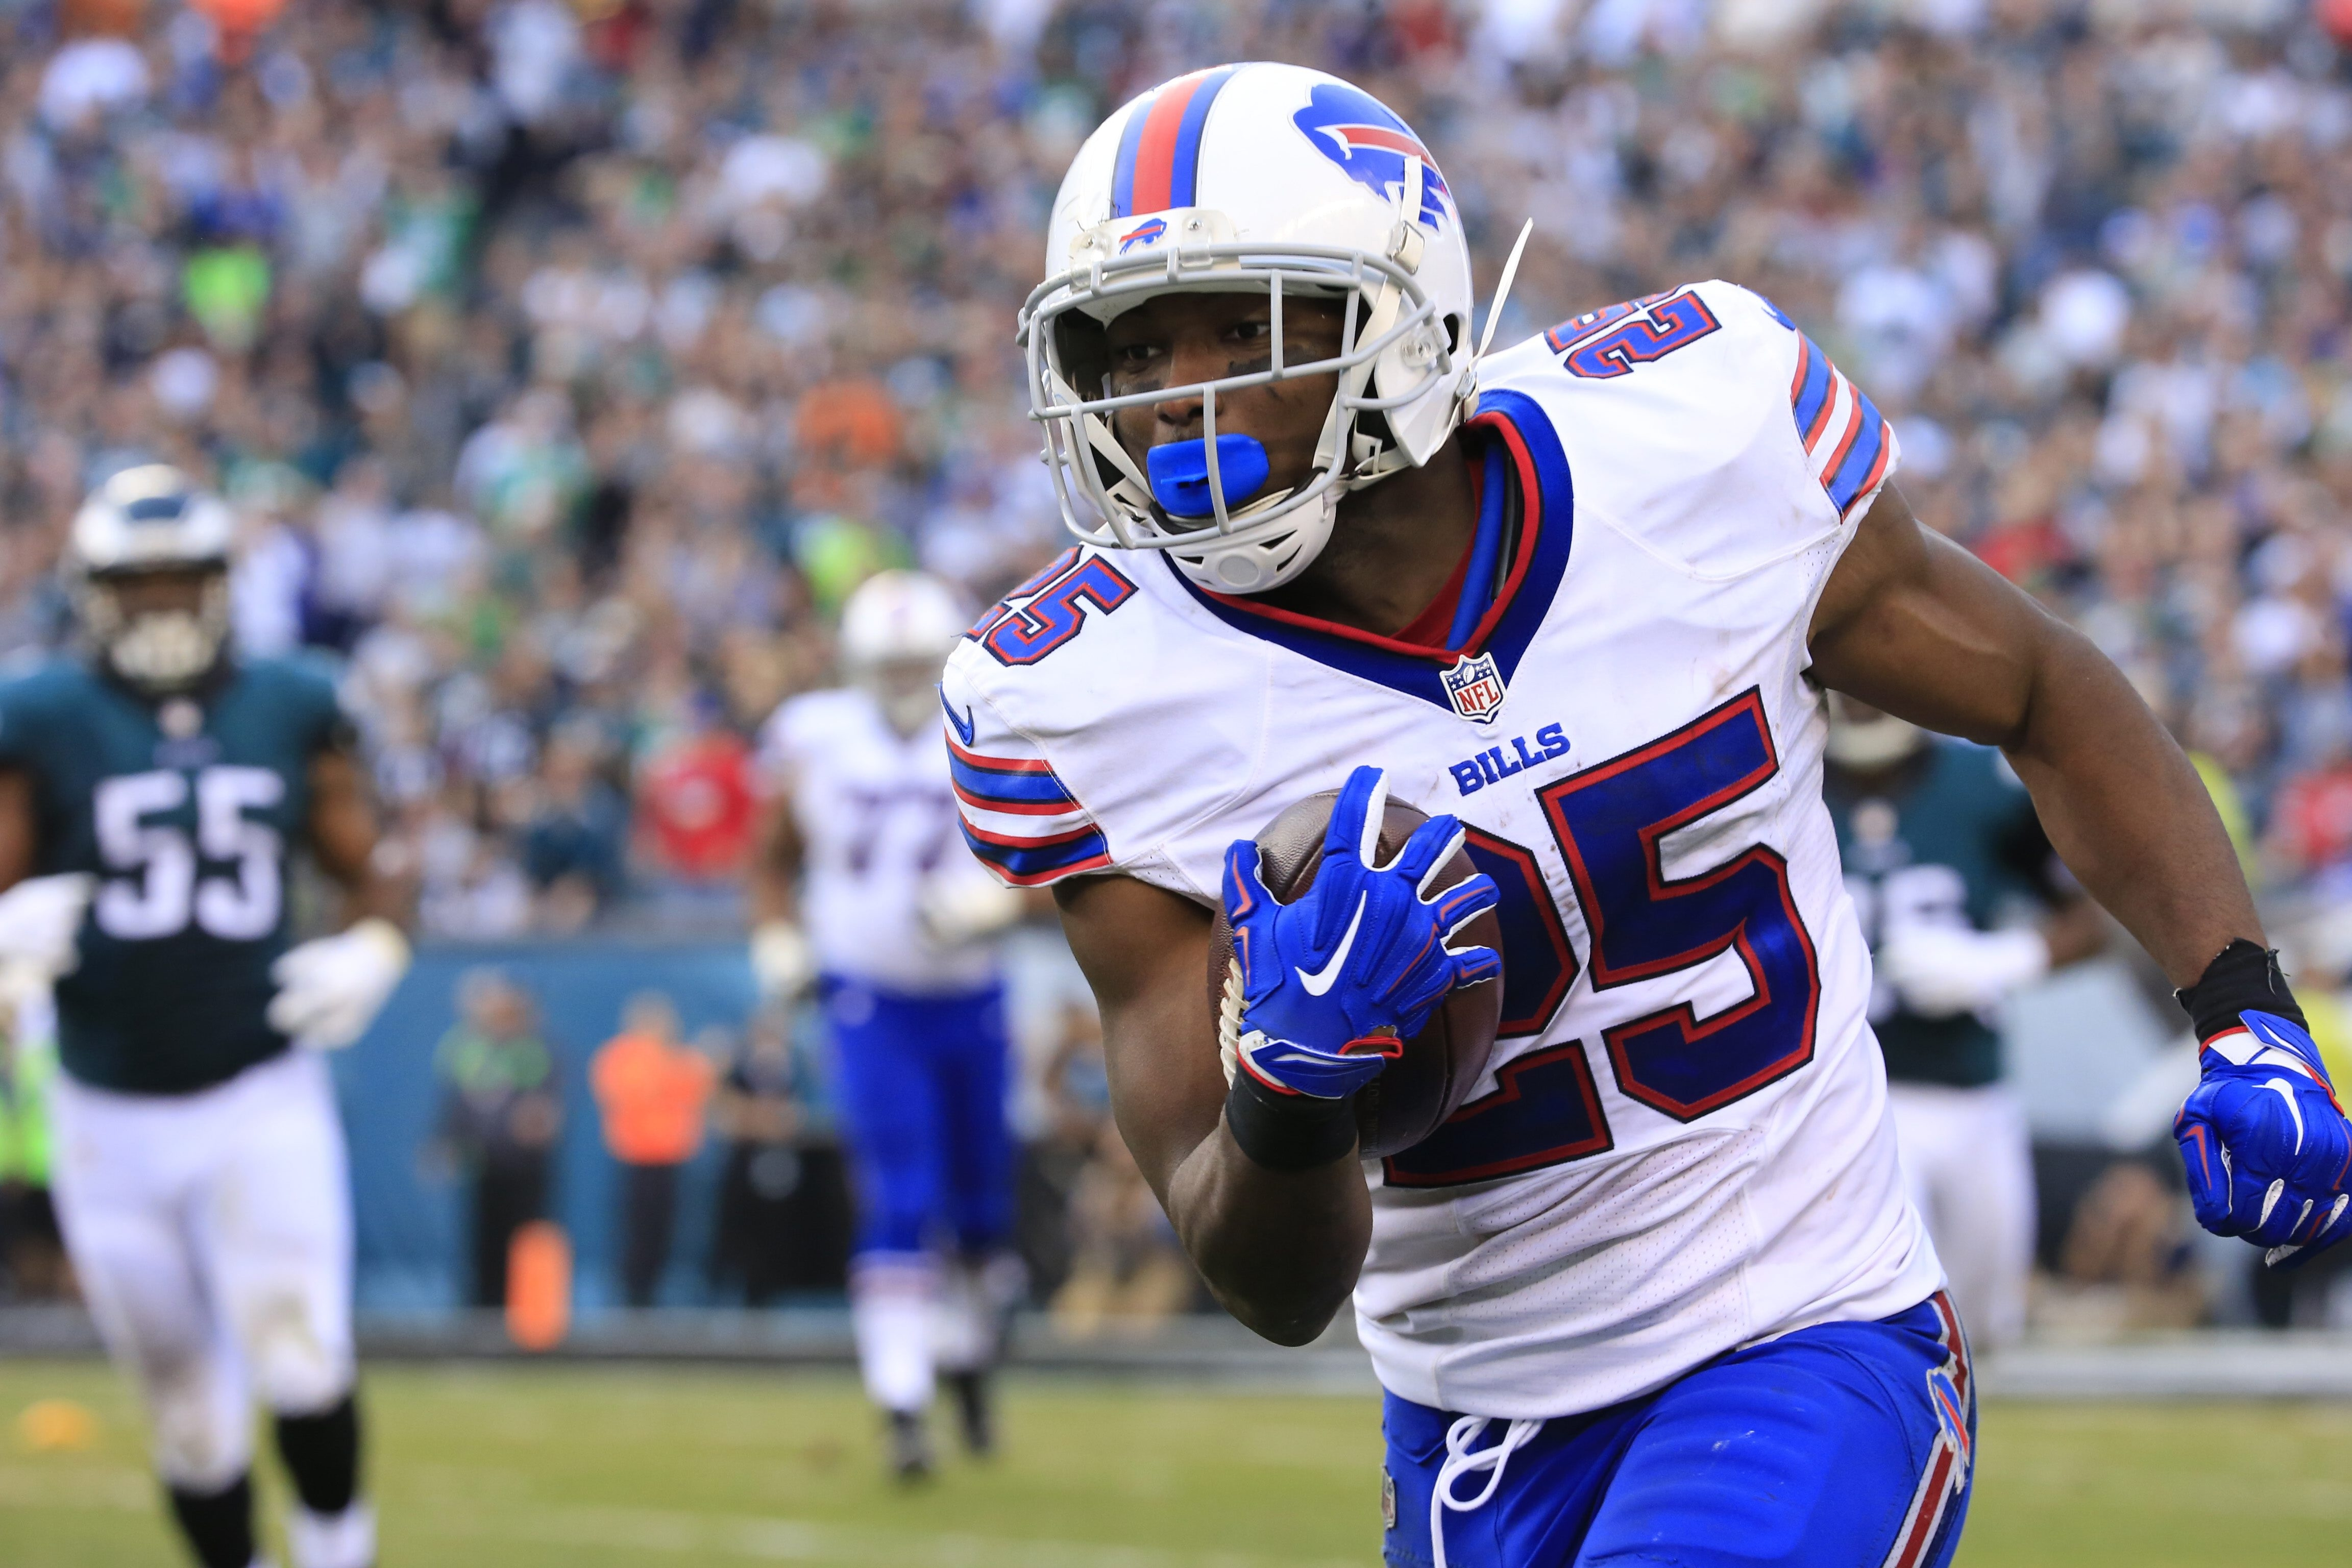 The Buffalo Bills will need to squeeze as many peak years as they can from running back LeSean McCoy.